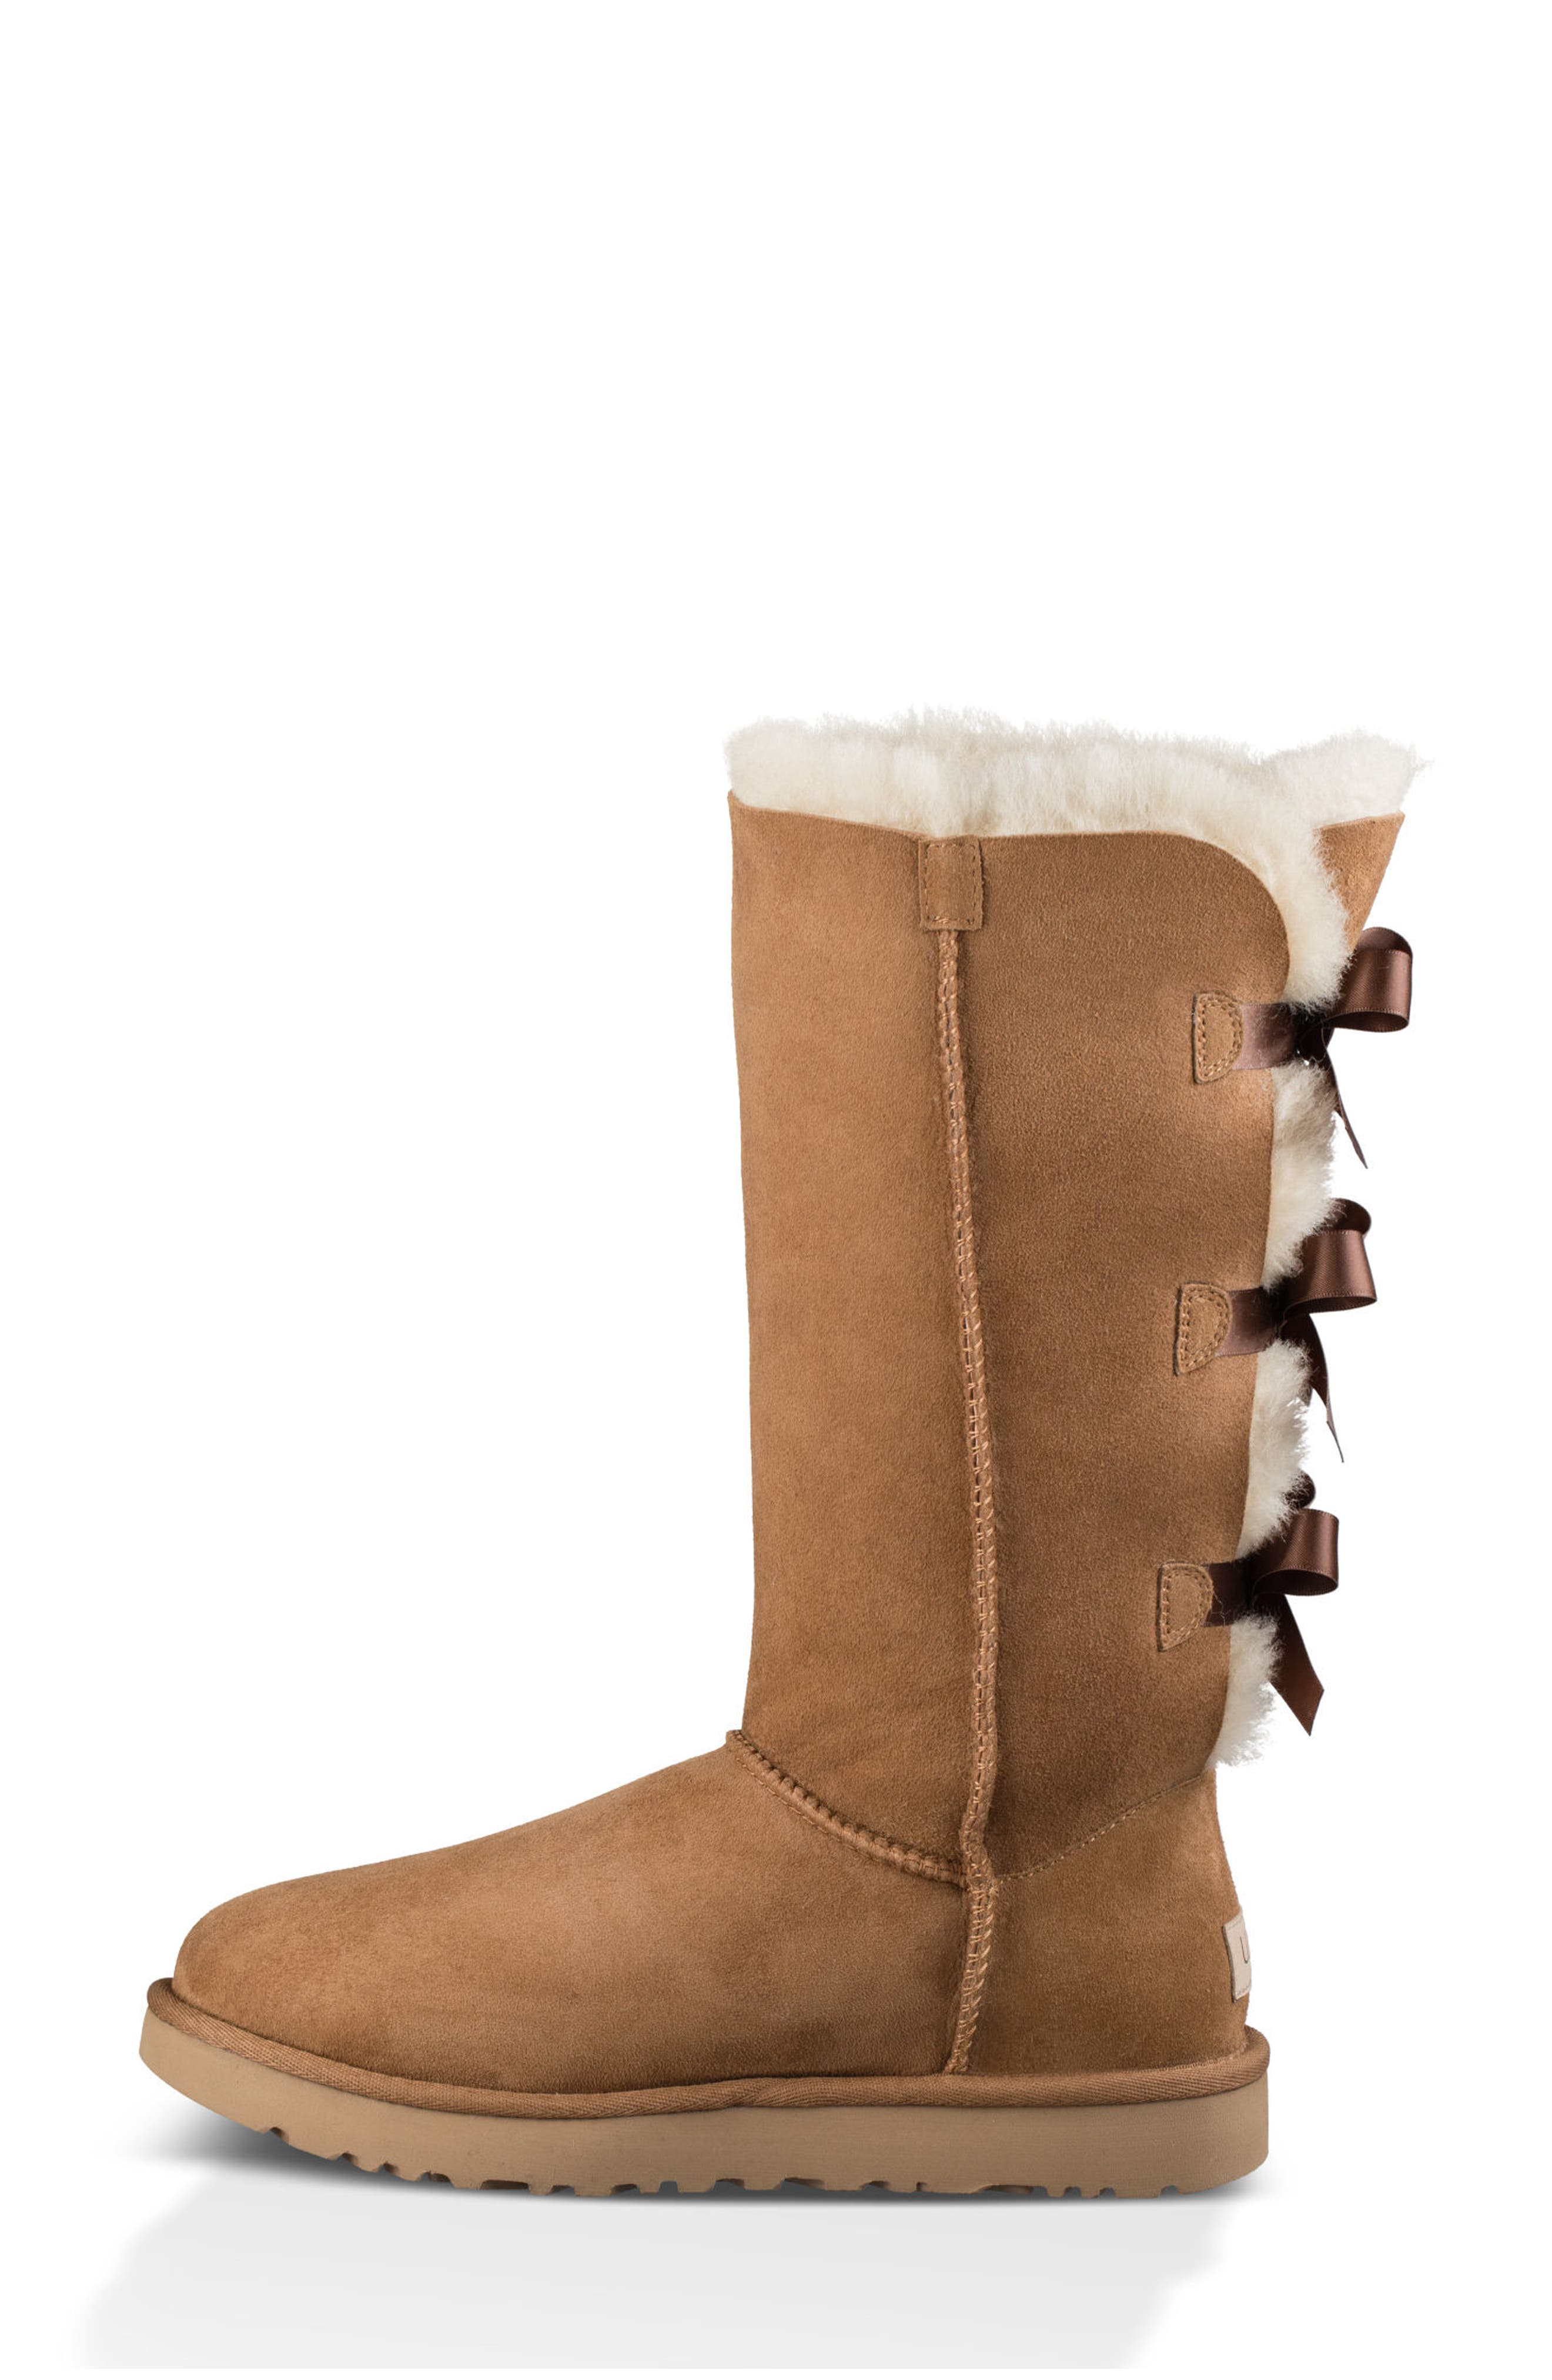 Bailey Bow Tall II Boot,                             Alternate thumbnail 2, color,                             Chestnut Suede